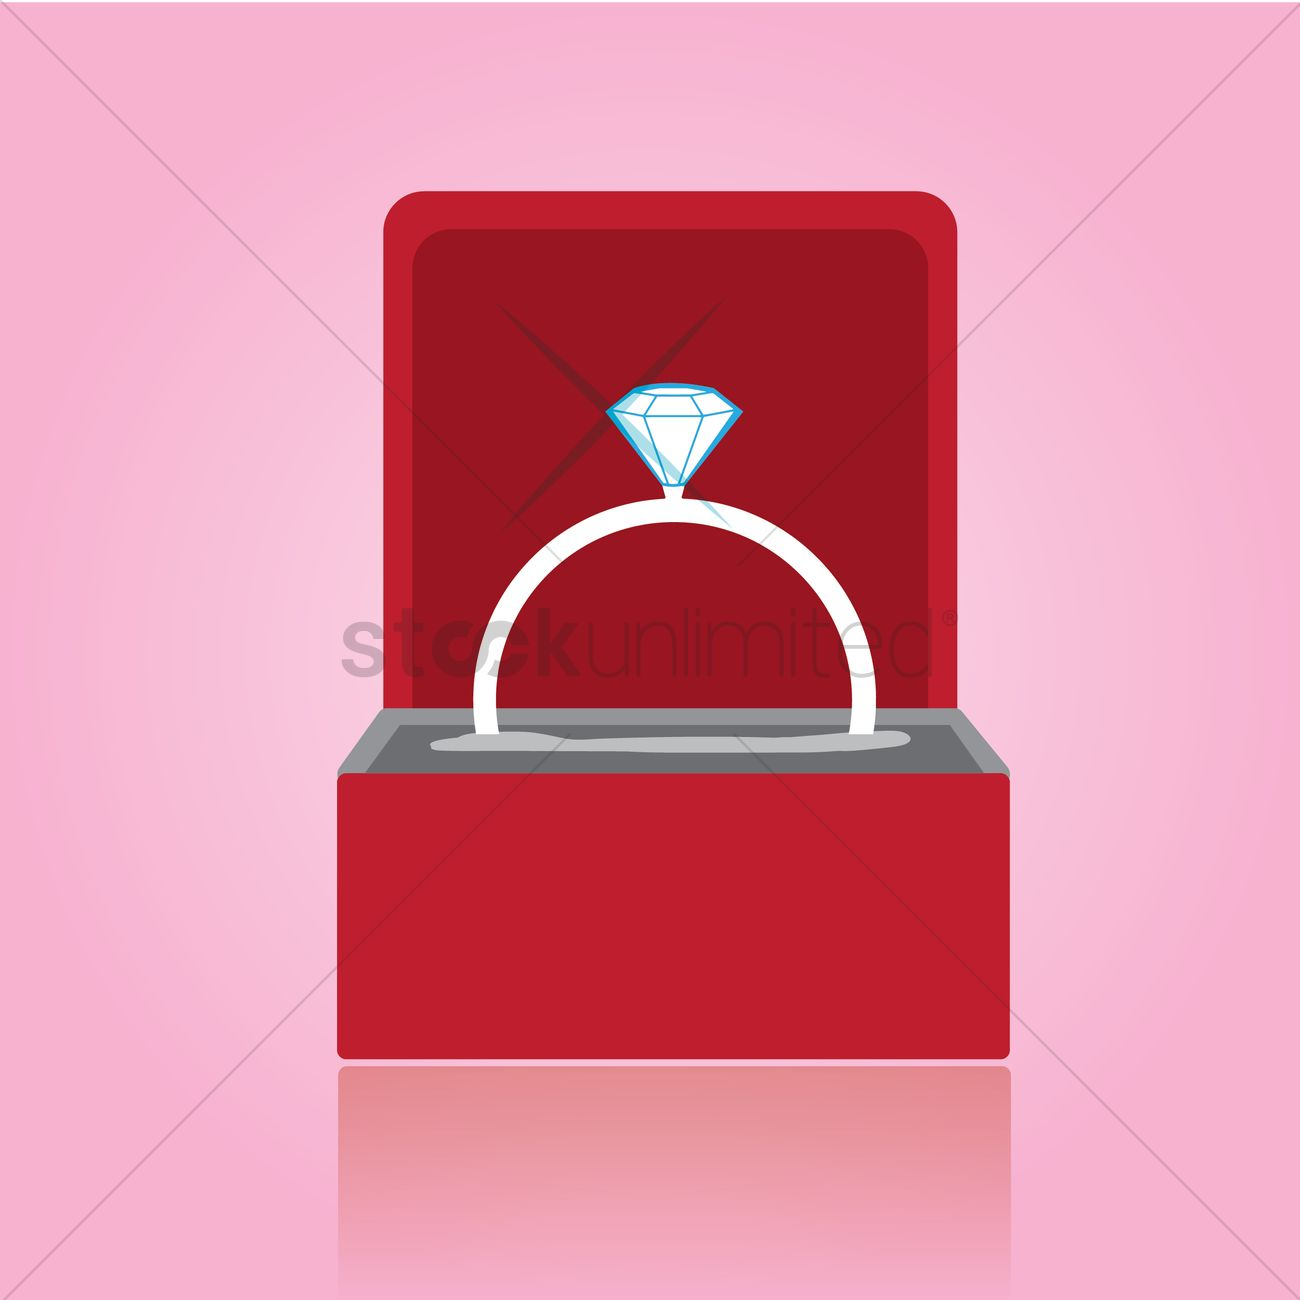 Proposal ring in a box Vector Image - 1457255 | StockUnlimited